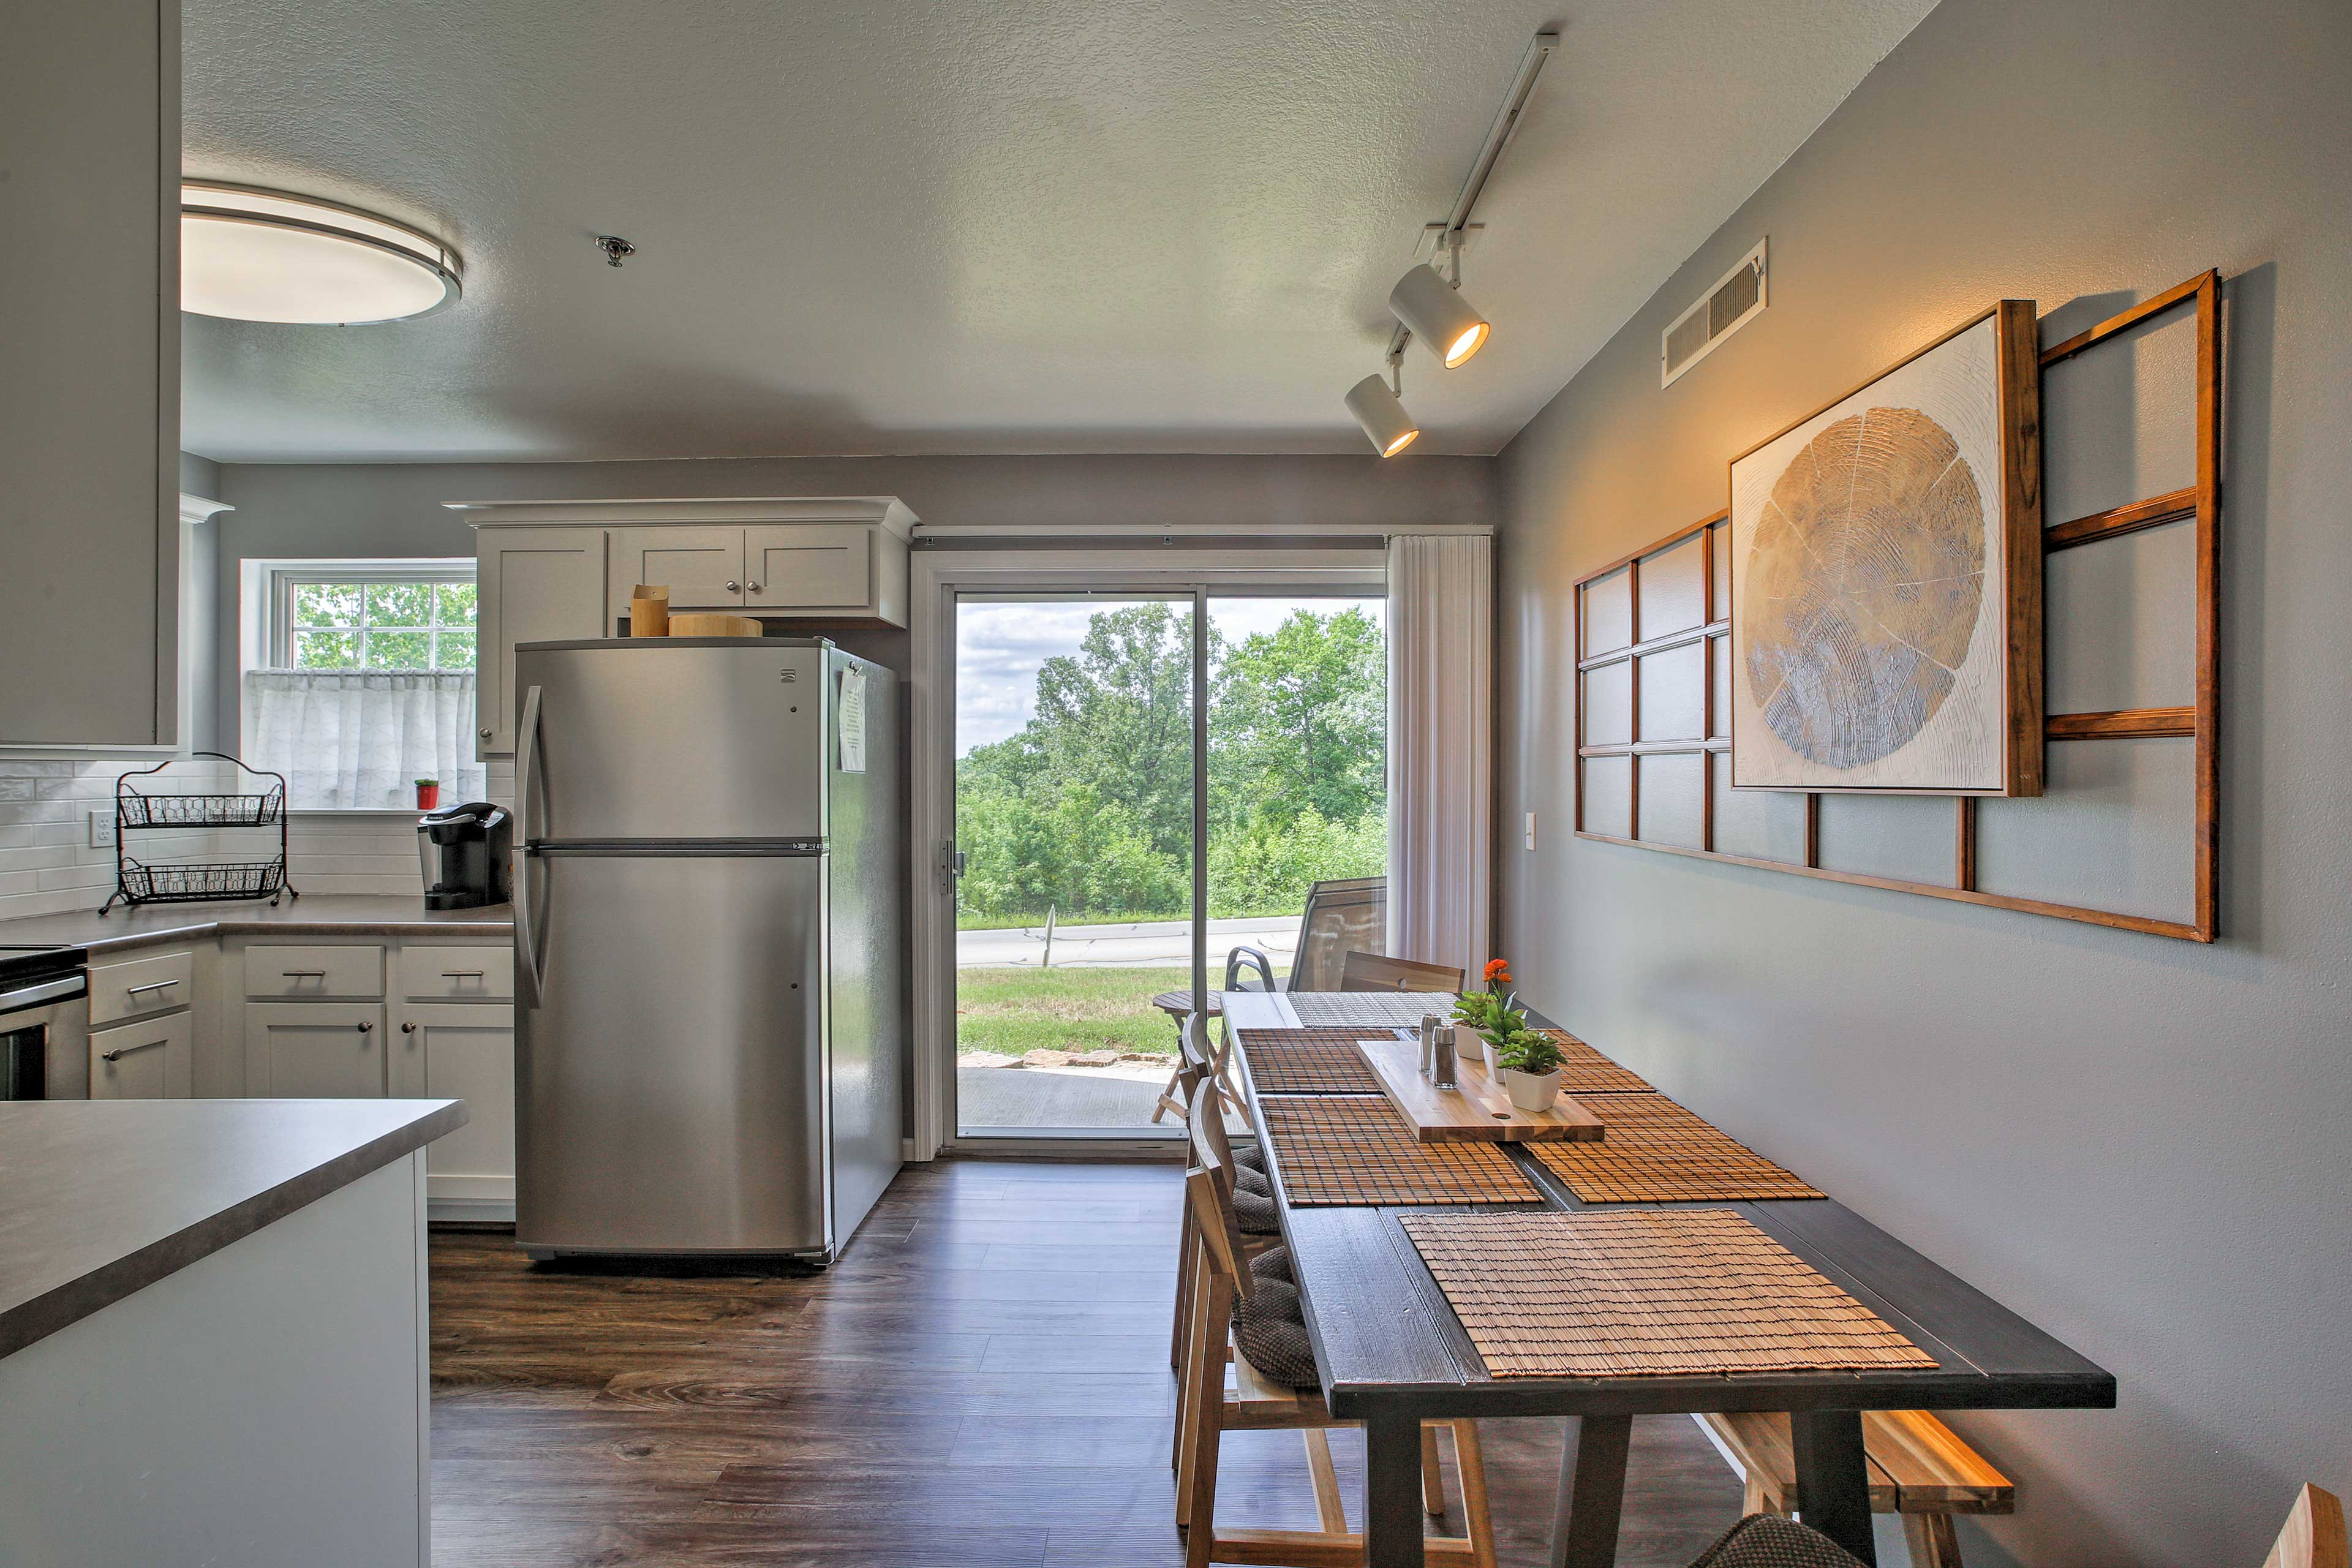 This 1,200-square-foot home offers plenty of space for up to 6 guests.